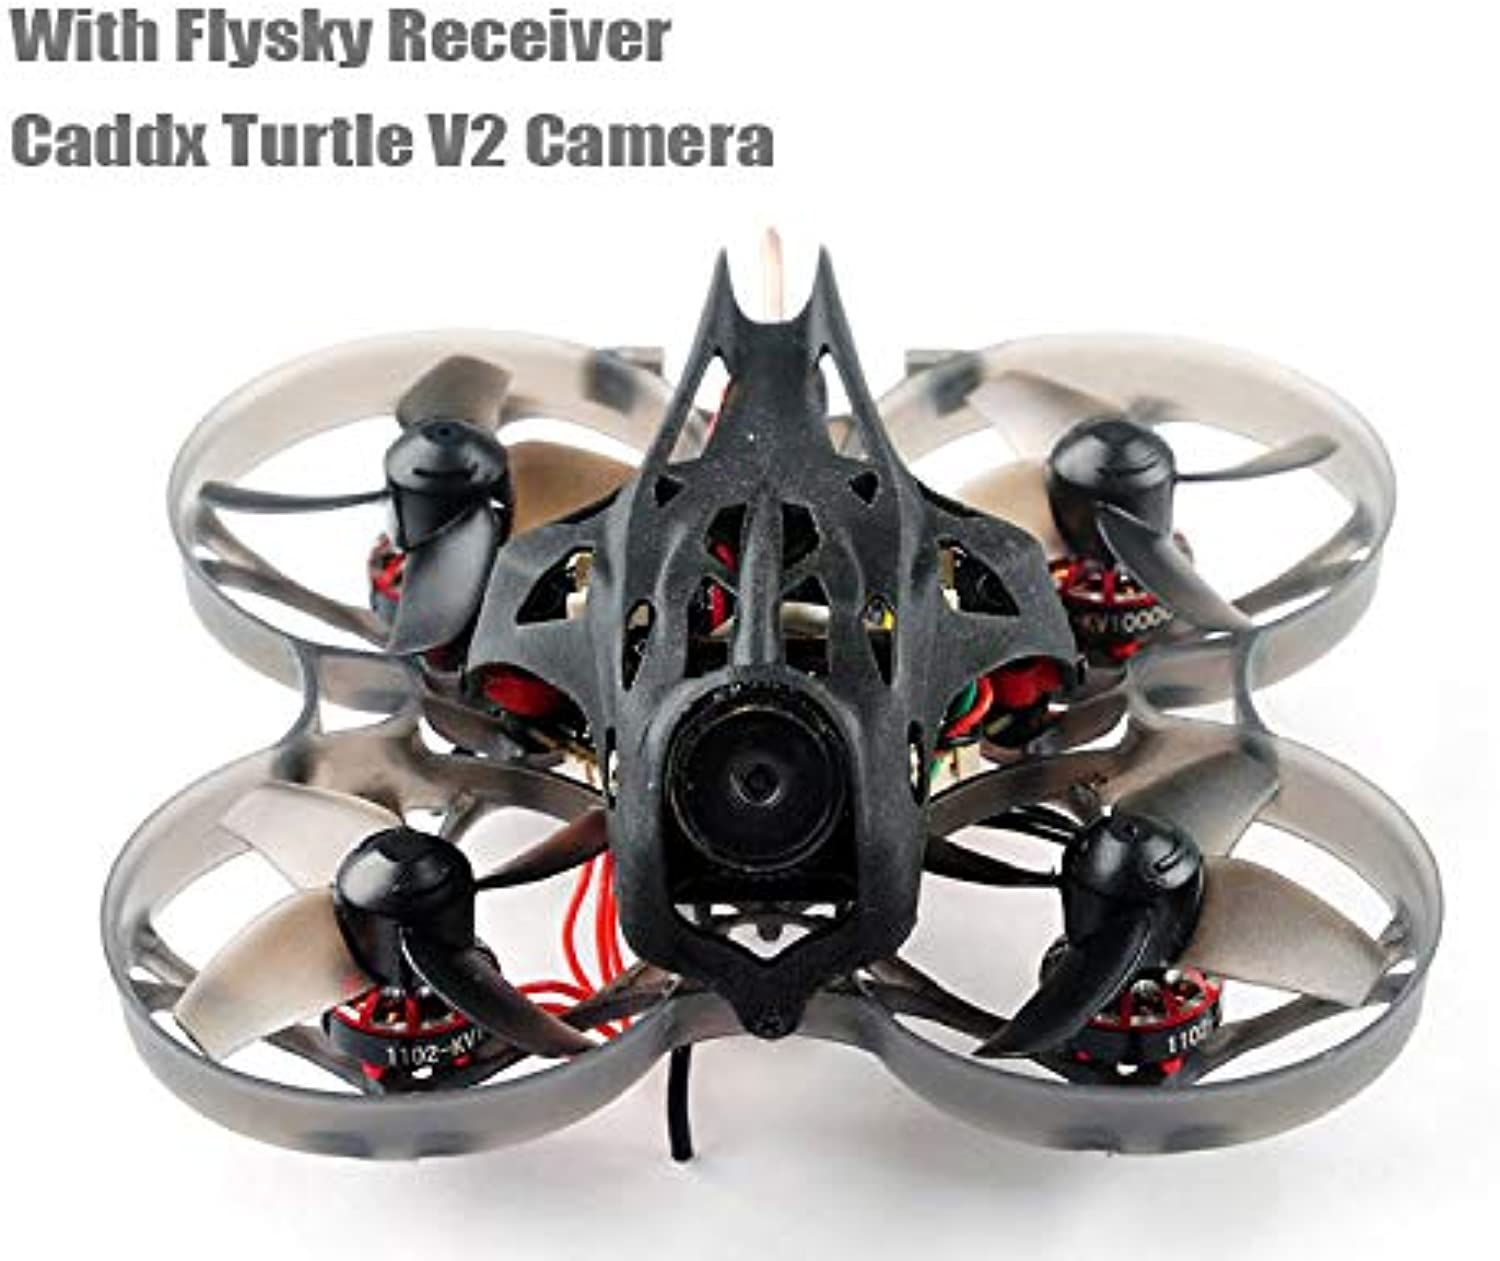 Mobula7 V2 HD 23S 75mm Indoor Micro RC Brushless FPV Whoop Drone BNF w Flysky Receiver (CADDX Turtle V2 HD Camera Included)